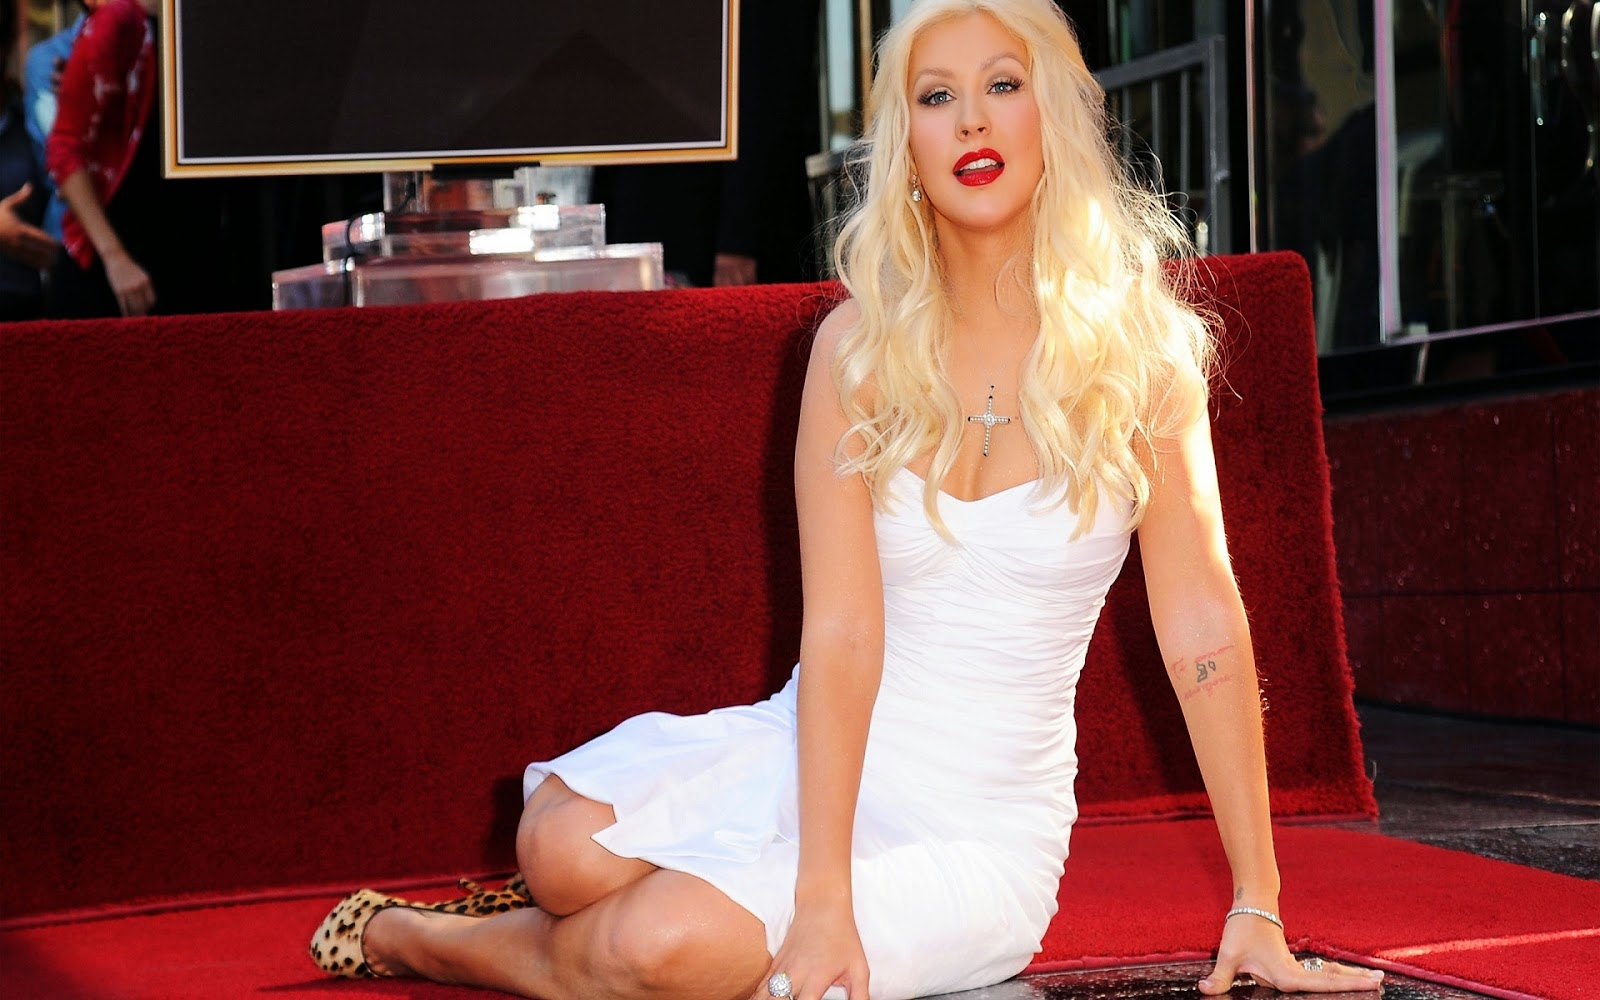 actress wallpapers tags christina aguilera hd wallpapers christina 1600x1000